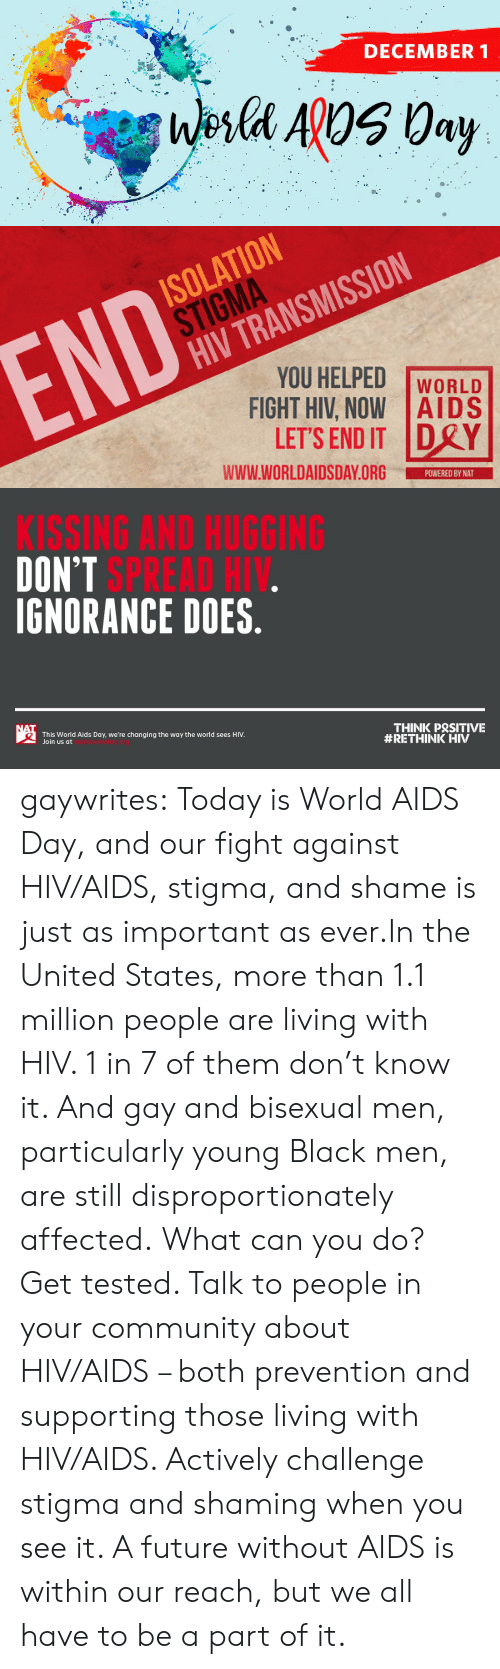 Prevention: DECEMBER 1  Wesla ApOS 0ay   ISOLATION  STIGMA  HIV TRANSMISSION  END  YOU HELPED  FIGHT HIV, NOW AIDS  LET'S END IT DRY  WORLD  www.WORLDAIDSDAY.ORG  POWERED BY NAT   KISSING AND HUGGING  DON'T SPREAD HIV.  IGNORANCE DOES.  NAT  THINK PRSITIVE  #RETHINK HIV  This World Aids Day, we're changing the way the world sees HIV.  Join us at gaywrites:  Today is World AIDS Day, and our fight against HIV/AIDS, stigma, and shame is just as important as ever.In the United States, more than 1.1 million people are living with HIV. 1 in 7 of them don't know it. And gay and bisexual men, particularly young Black men, are still disproportionately affected. What can you do? Get tested. Talk to people in your community about HIV/AIDS – both prevention and supporting those living with HIV/AIDS. Actively challenge stigma and shaming when you see it. A future without AIDS is within our reach, but we all have to be a part of it.